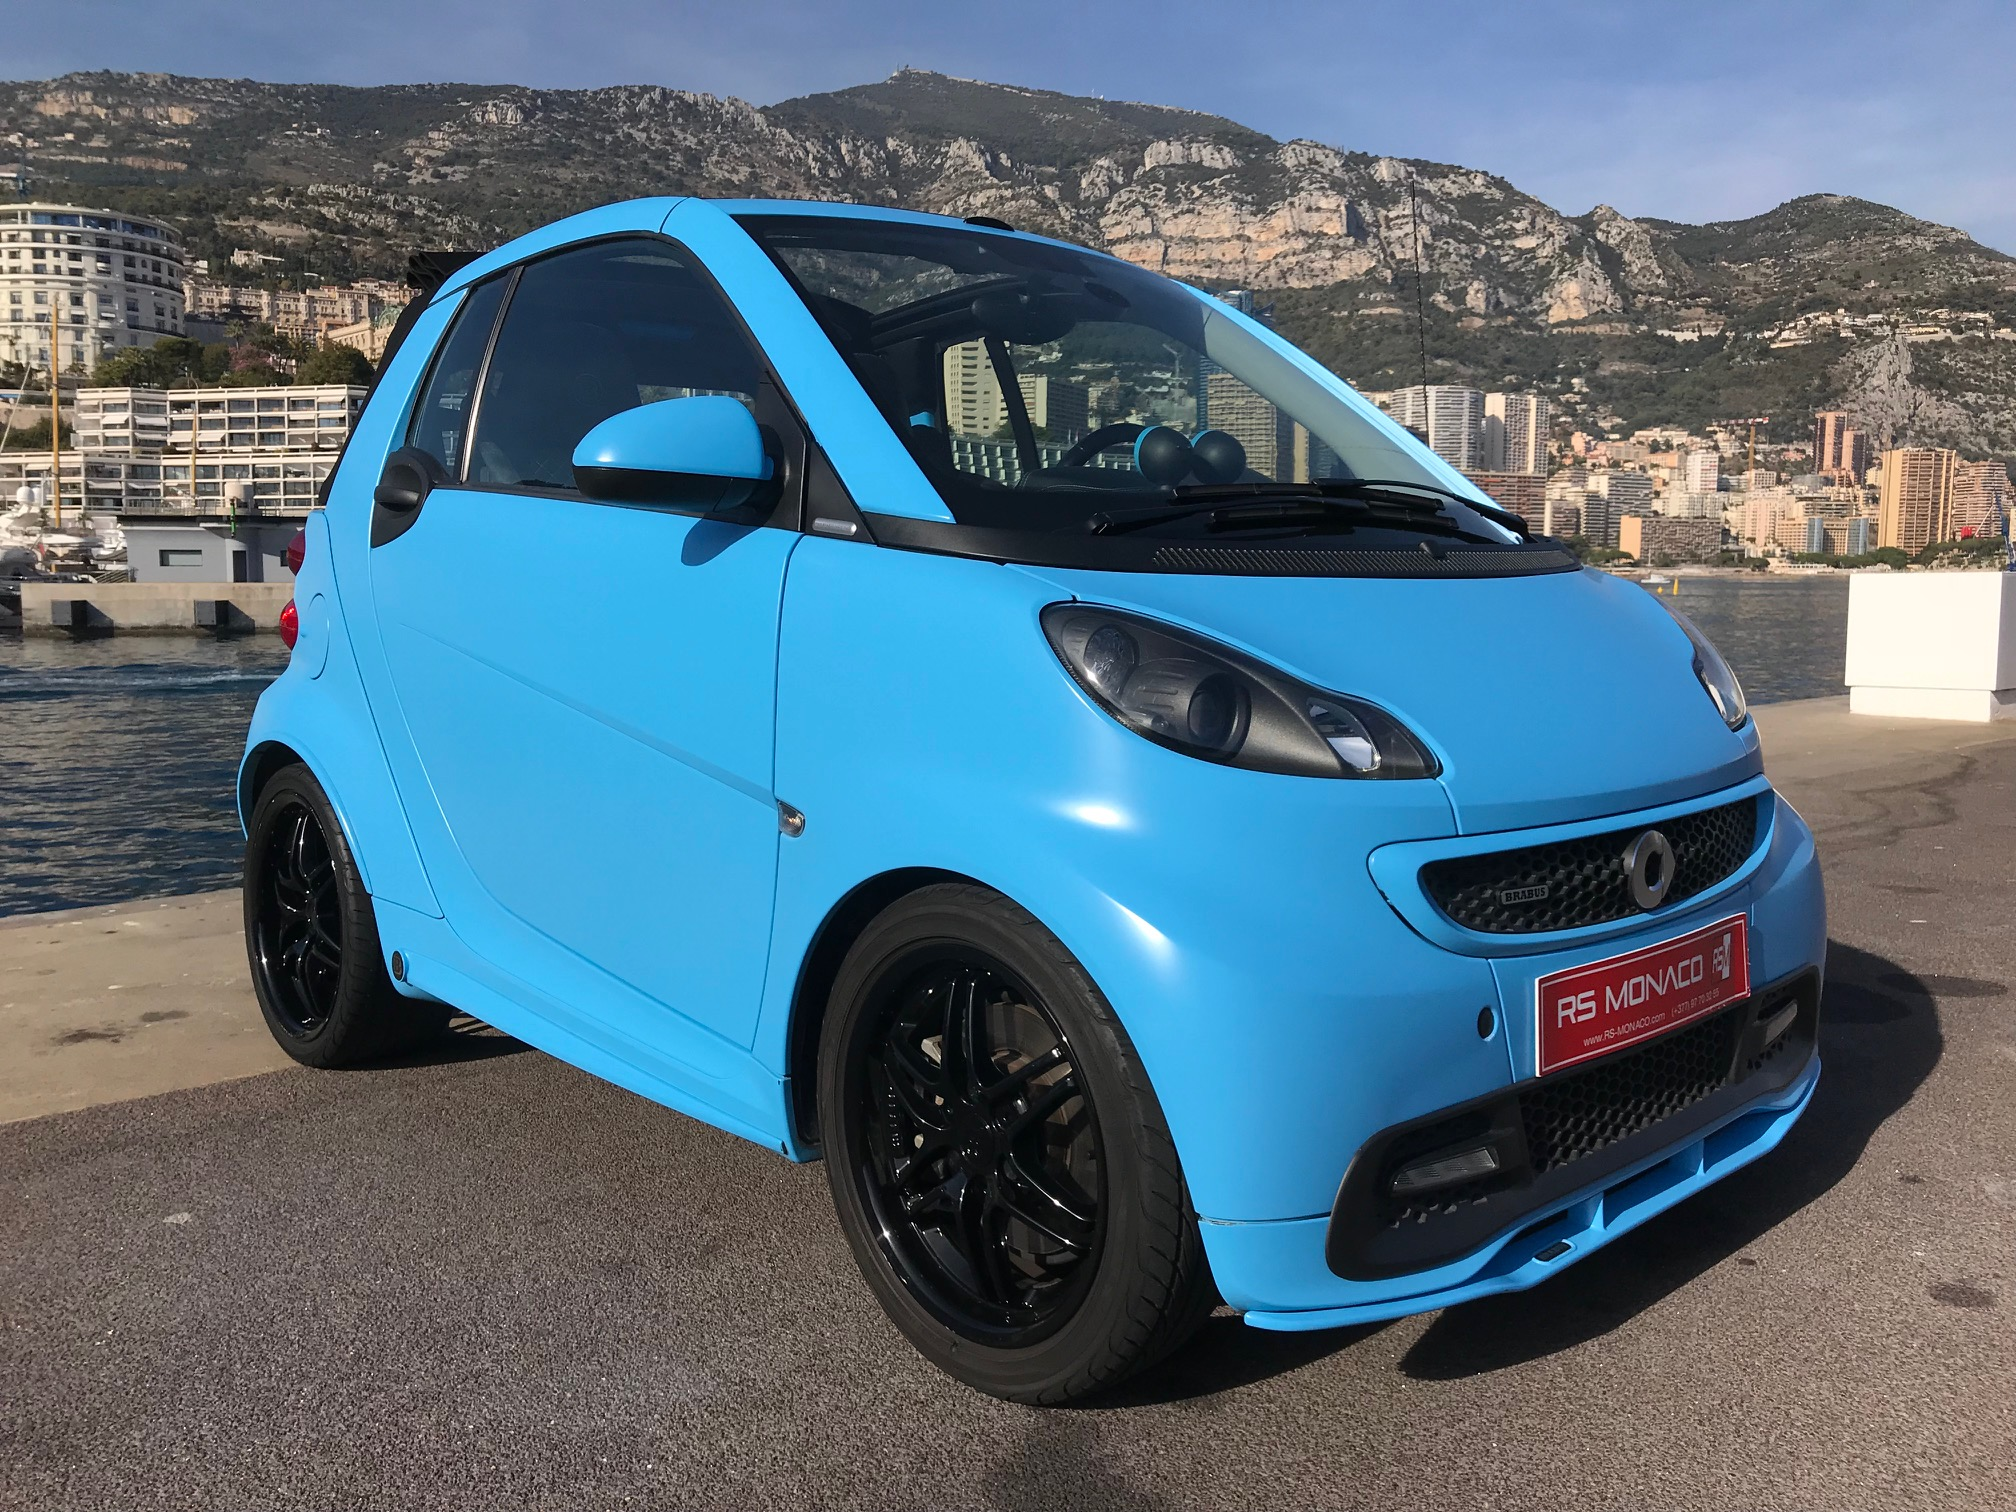 smart fortwo brabus cabrio 75 kw s l ctionn par rs monaco. Black Bedroom Furniture Sets. Home Design Ideas